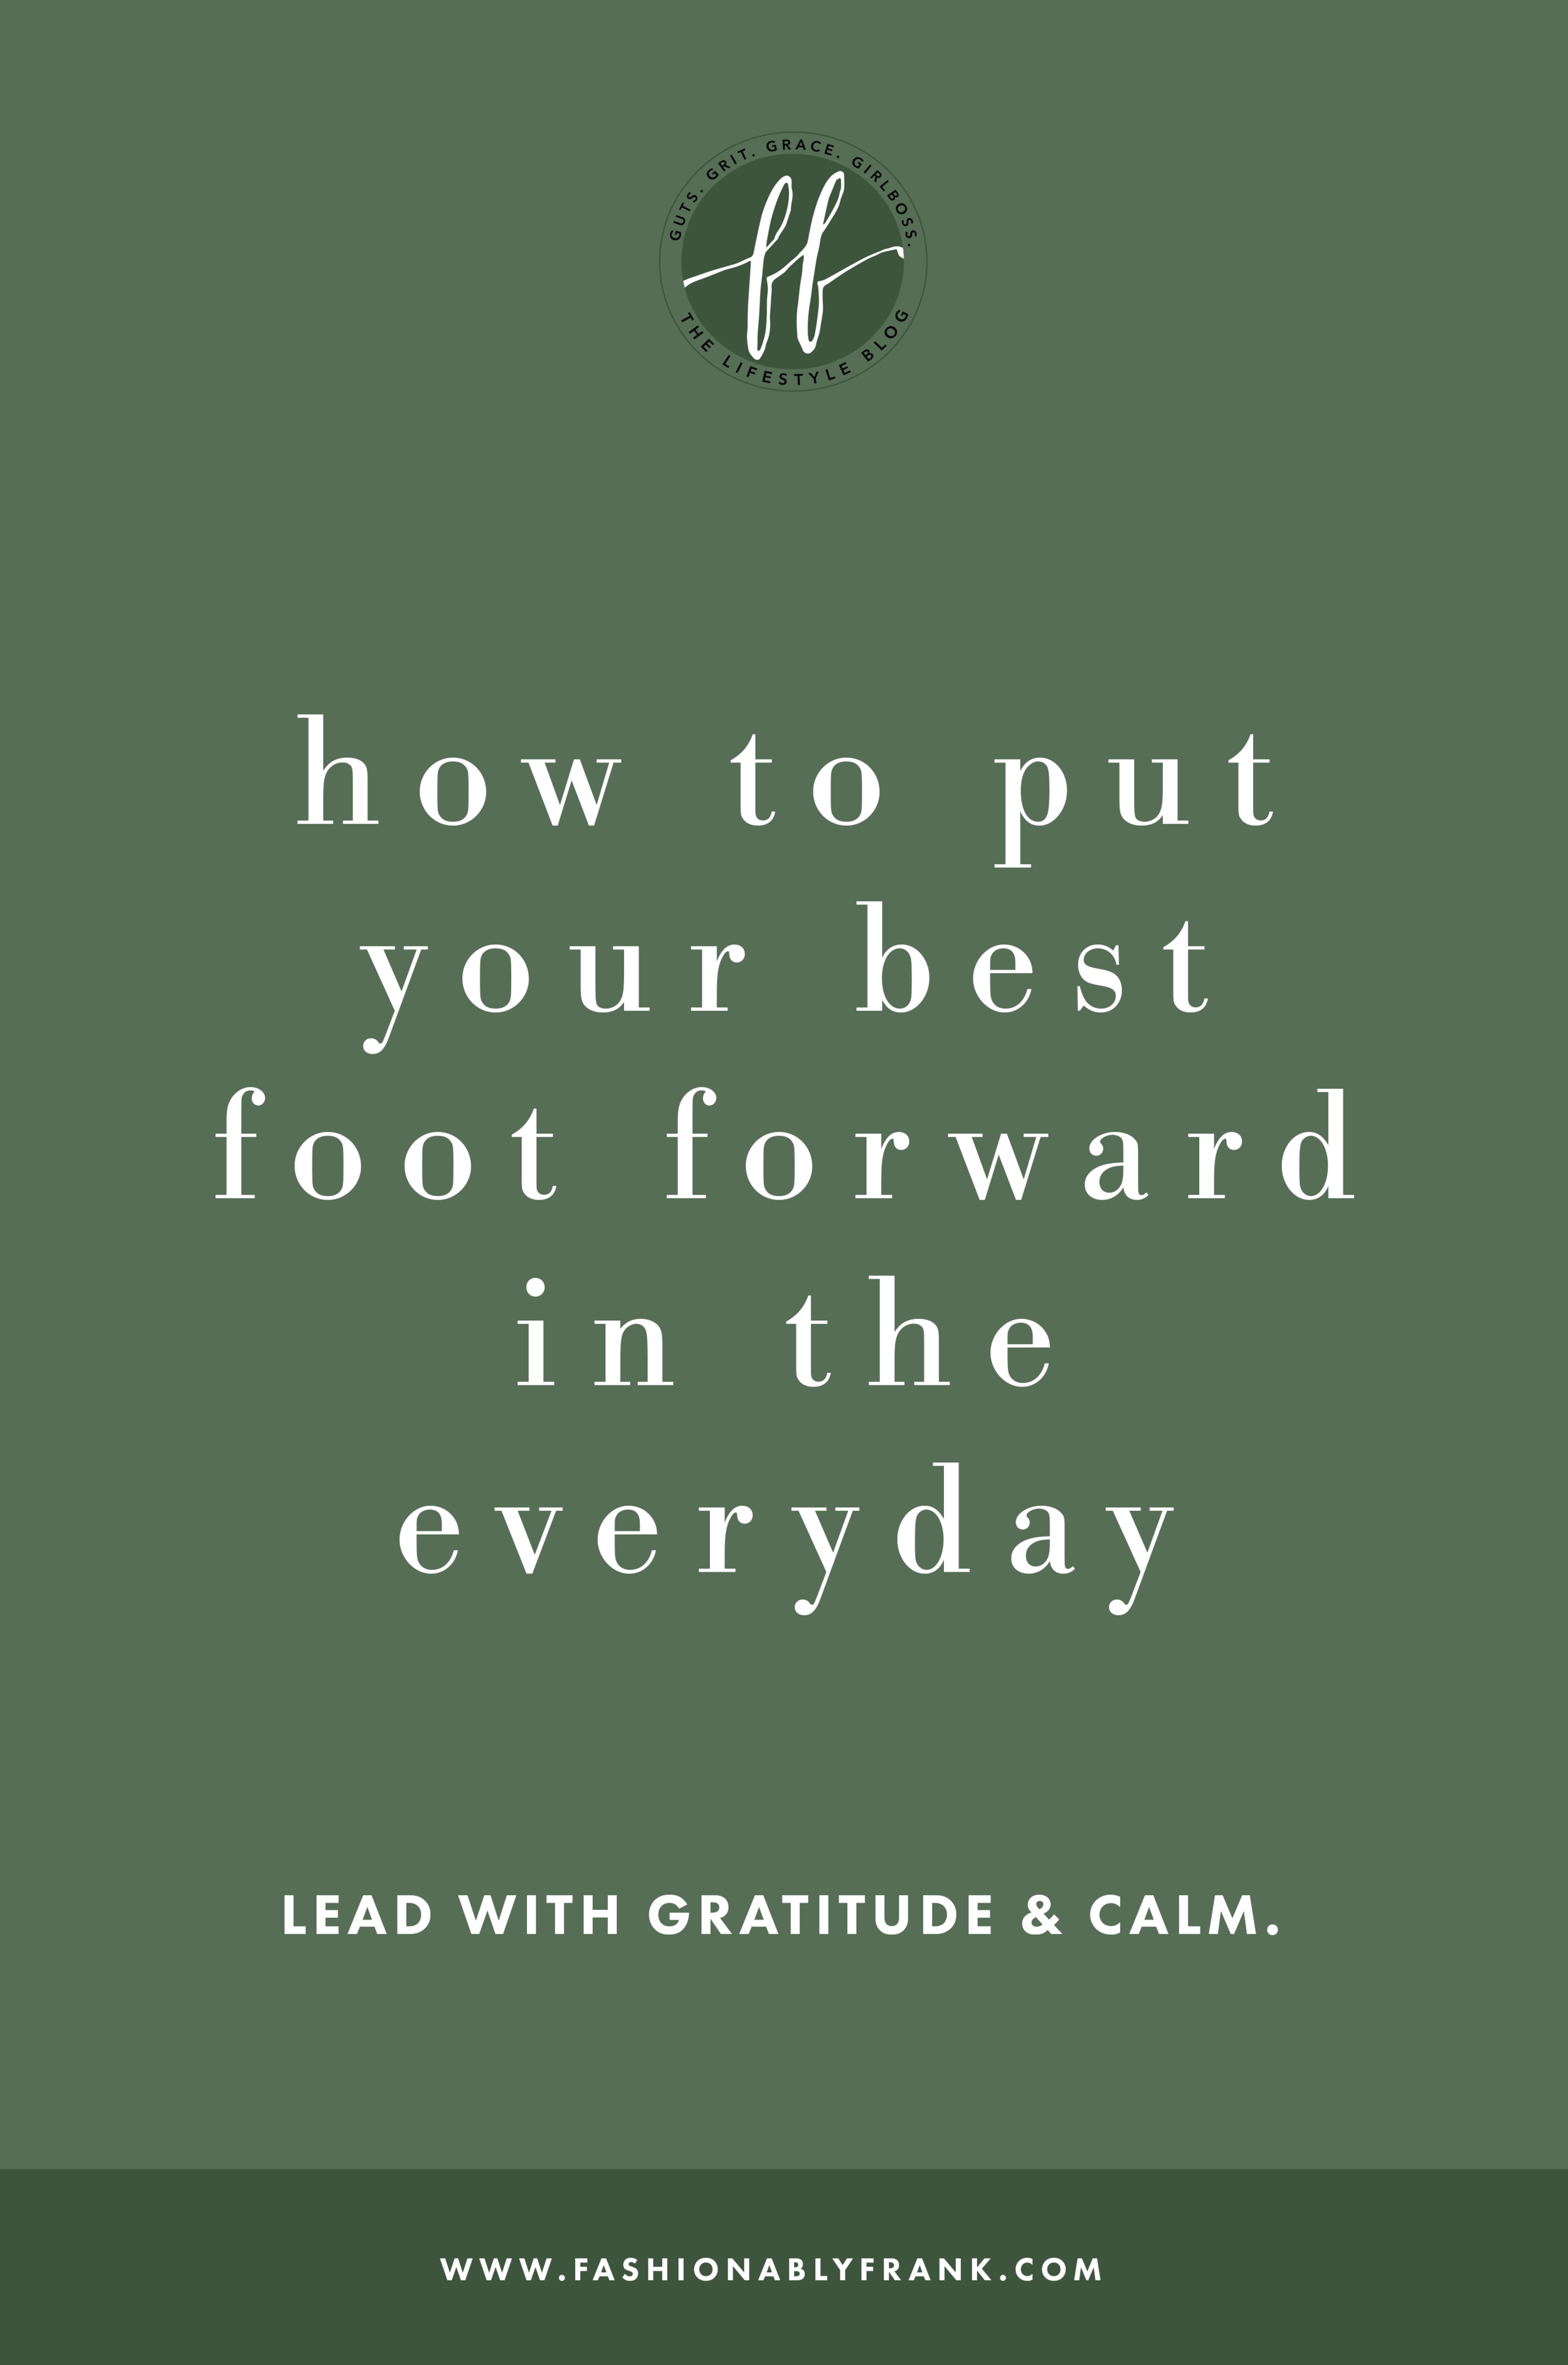 How to Put Your Best Foot Forward